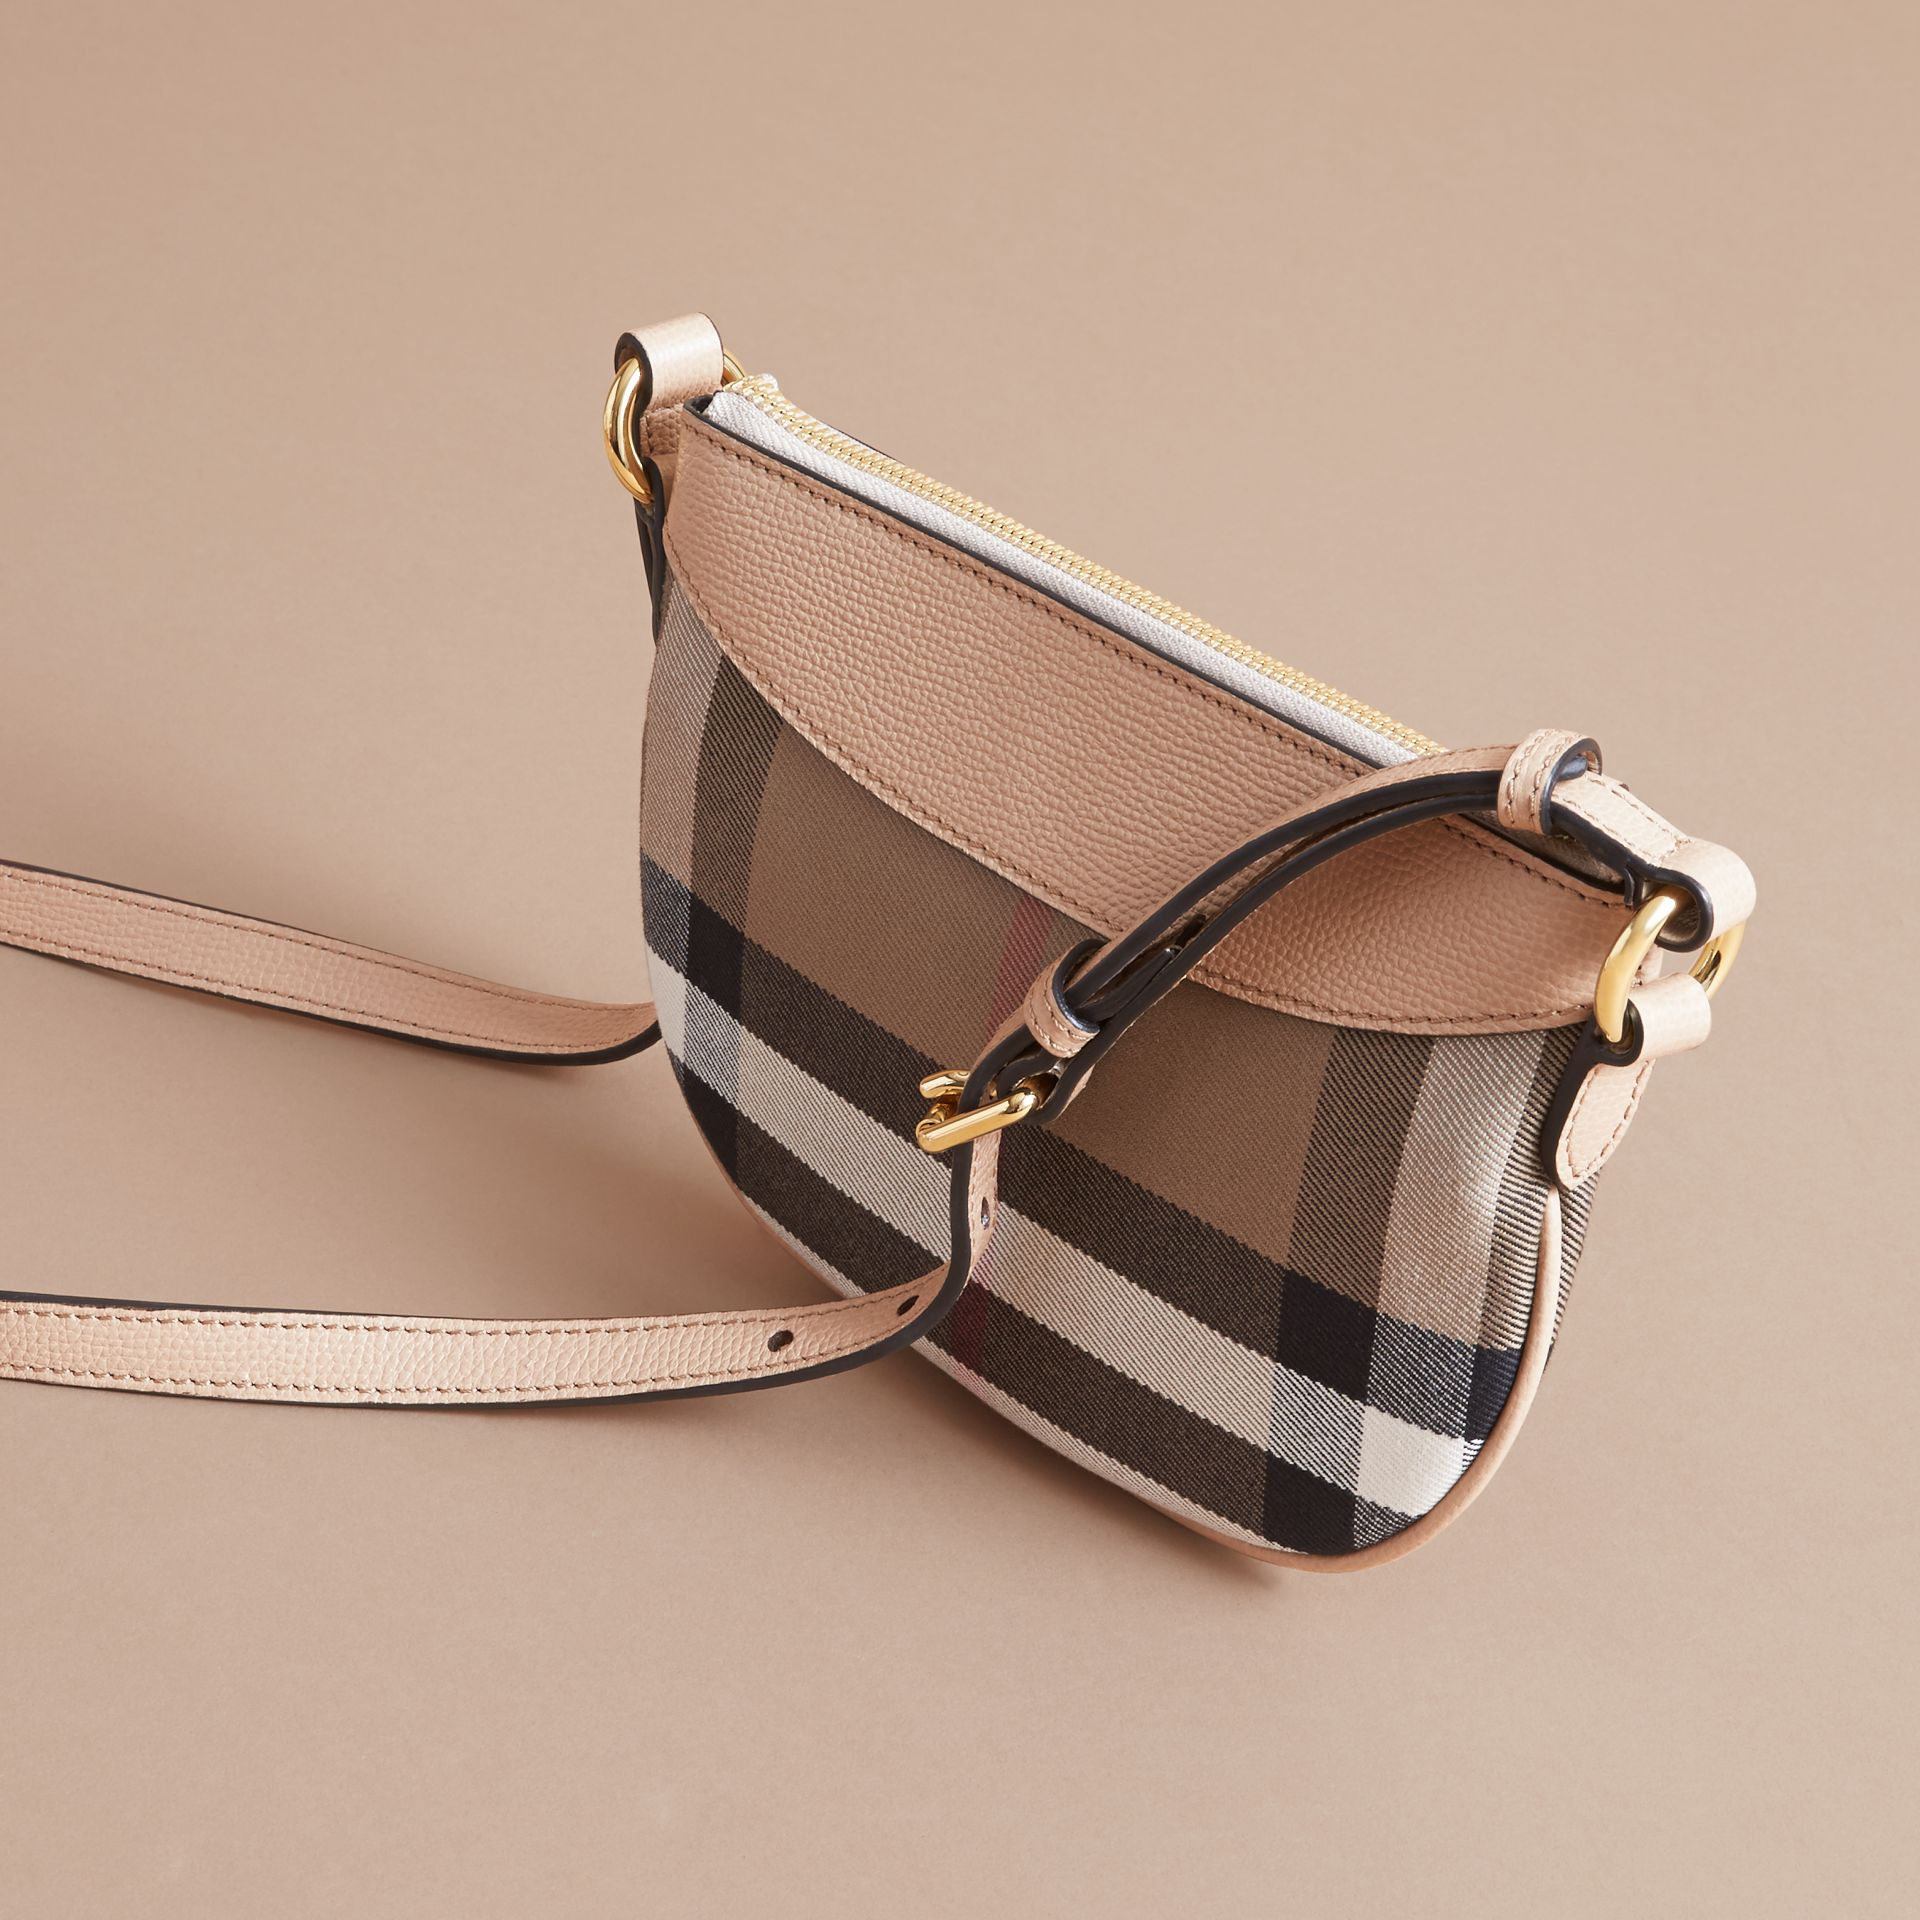 House Check and Leather Crossbody Bag in Chino - Girl | Burberry - gallery image 3